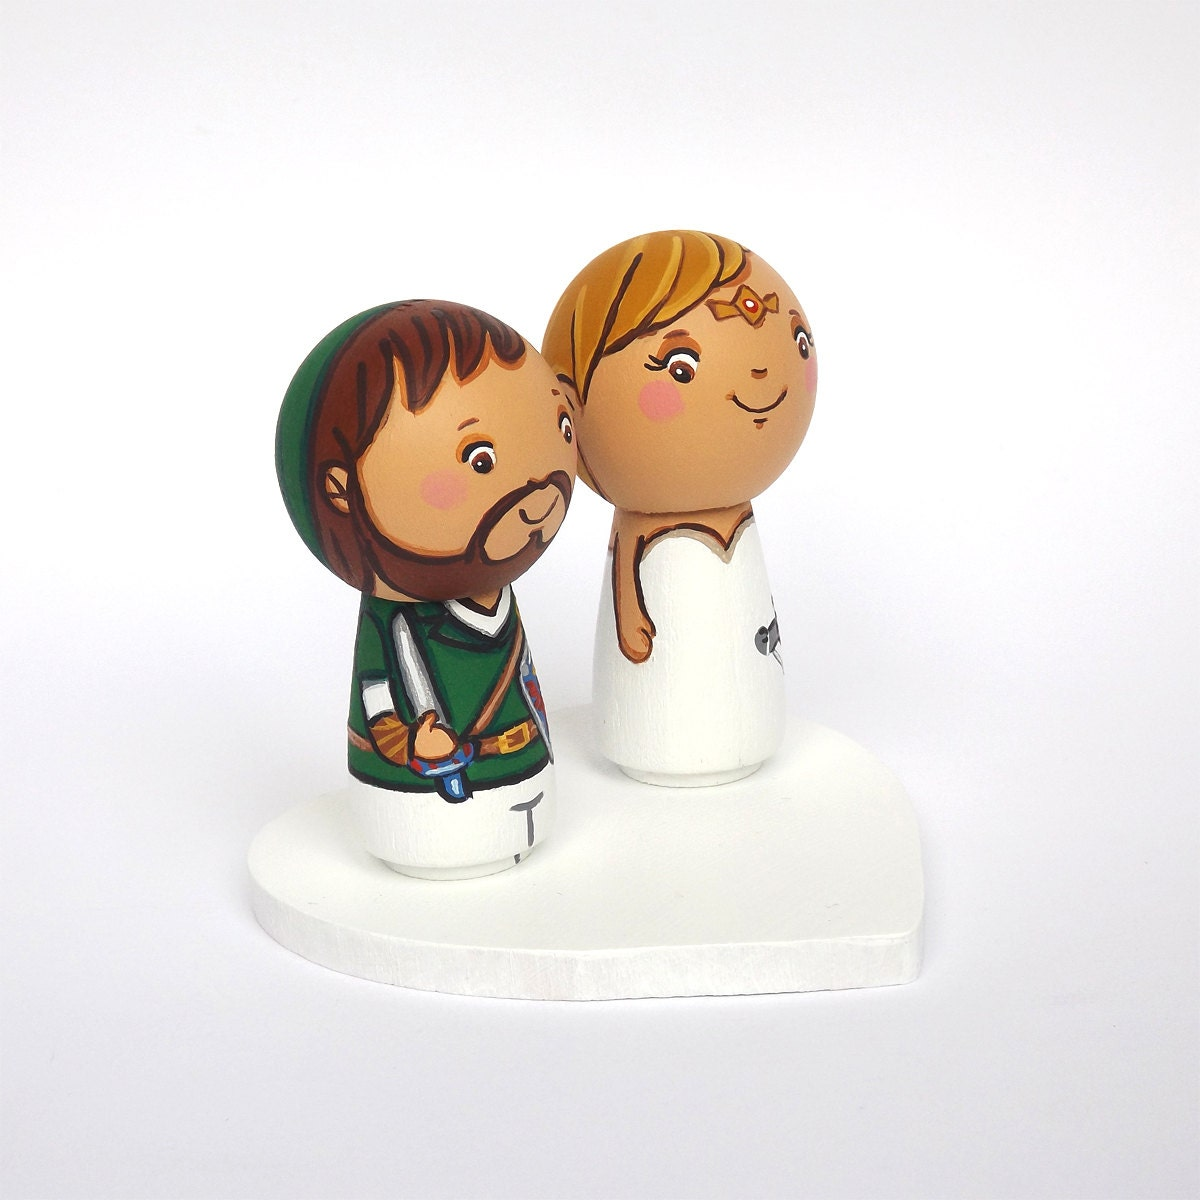 legend of zelda wedding cake topper the legend of wedding cake topper gamer by 16788